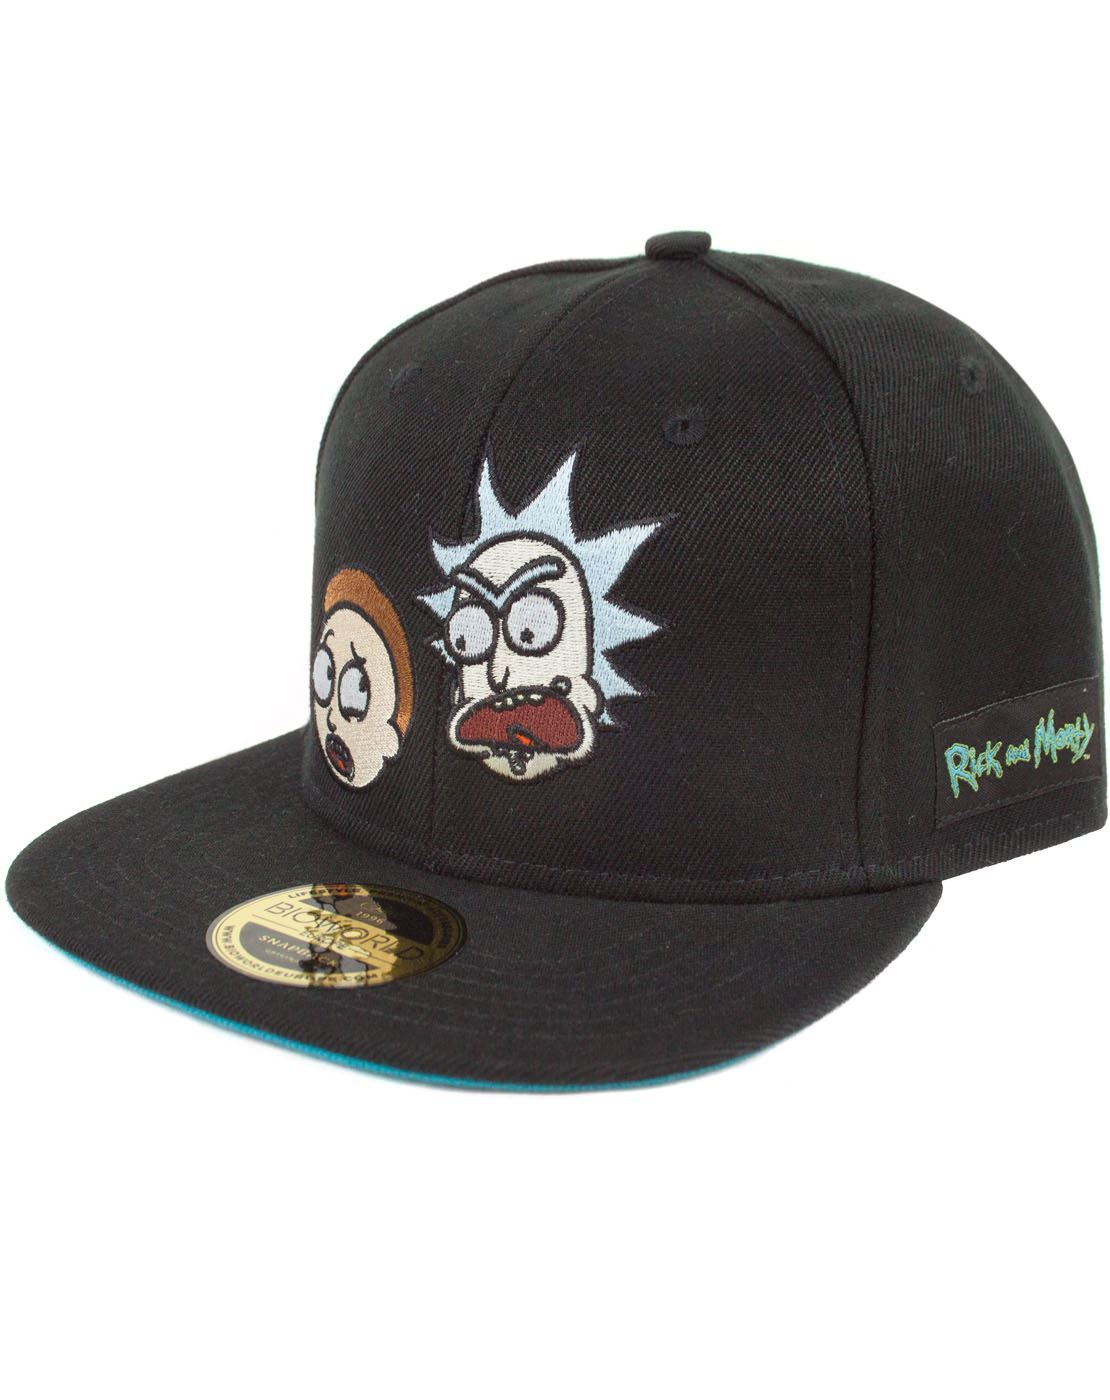 65b8efa8380 Rick And Morty Faces Snapback Cap – Vanilla Underground